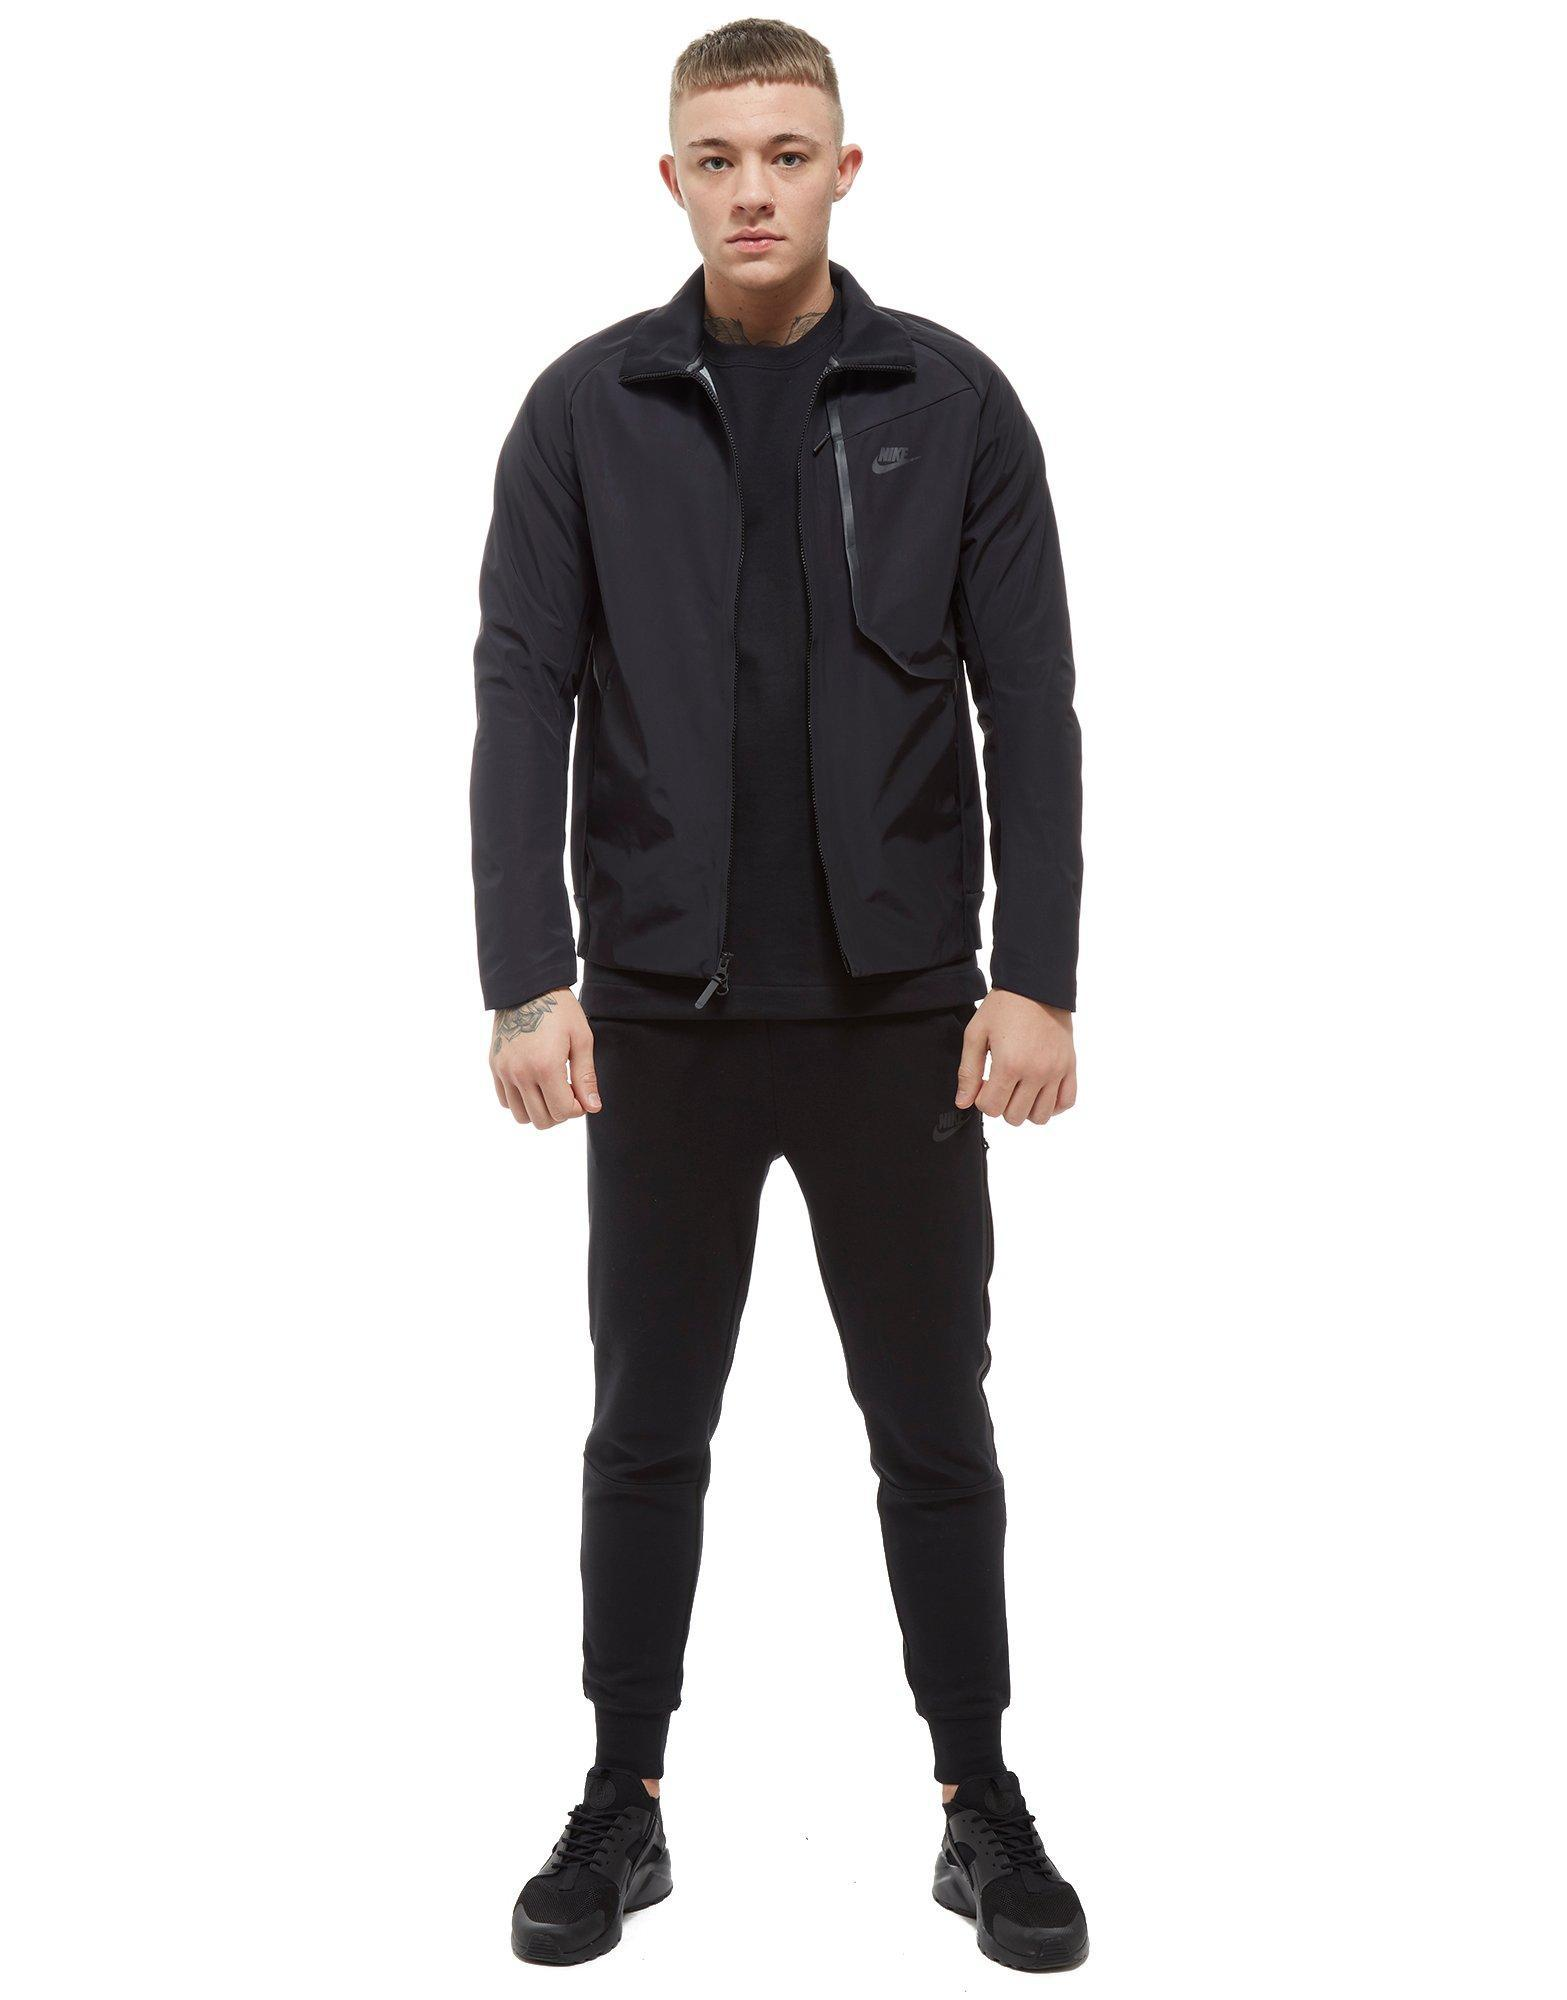 5b1d4ad3c16c Nike Tech Woven Track Jacket in Black for Men - Lyst